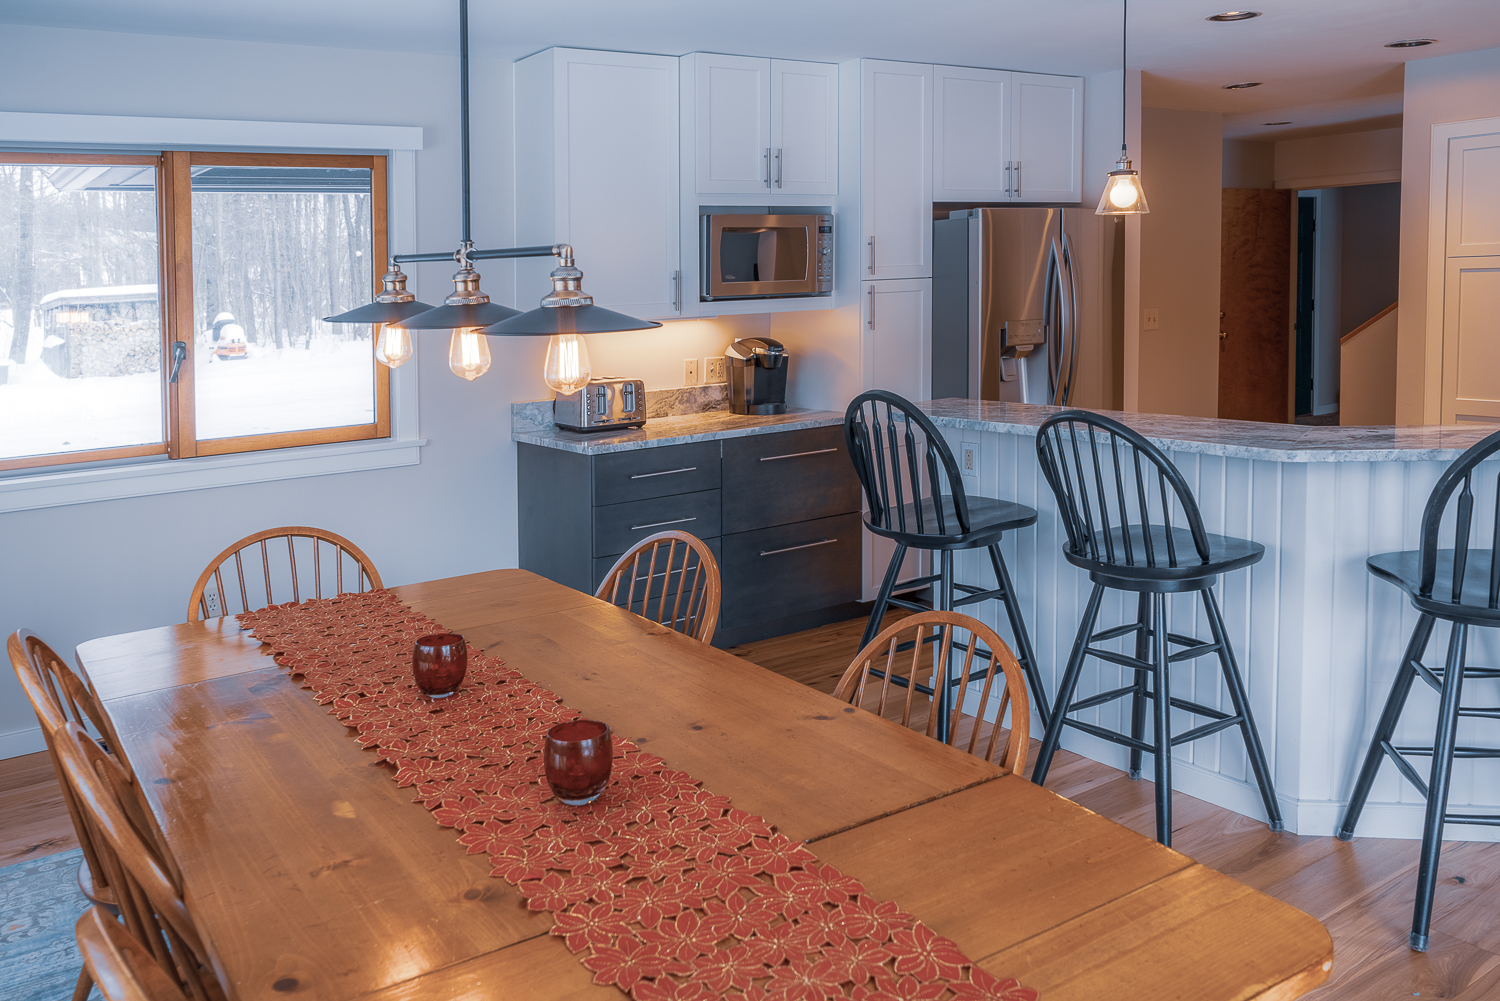 Kitchen and dinner table.jpg